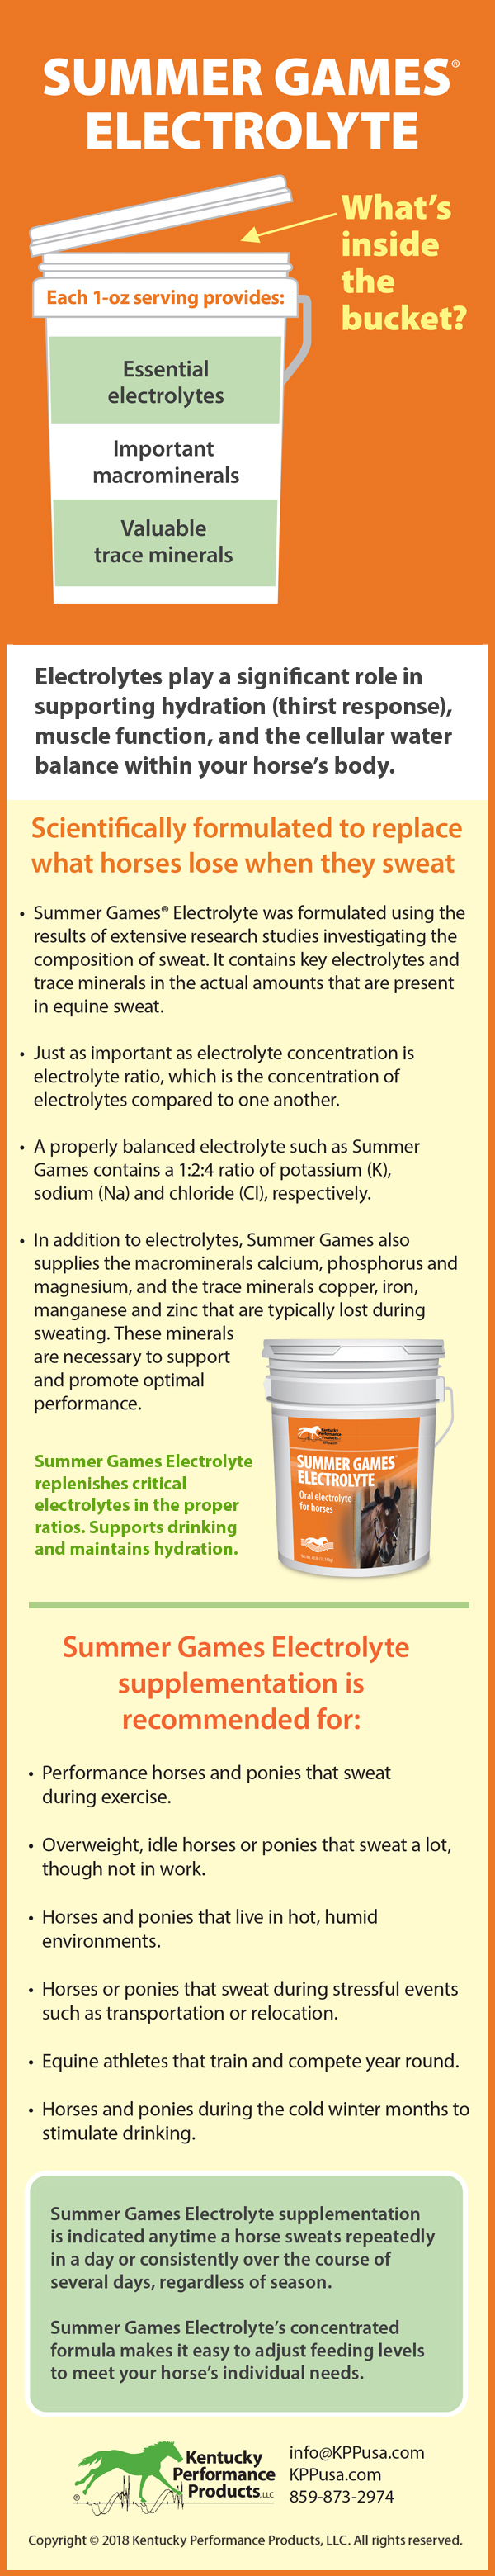 Summer-Games-Electrolyte-Whats-Inside-the-Bucket-18-173